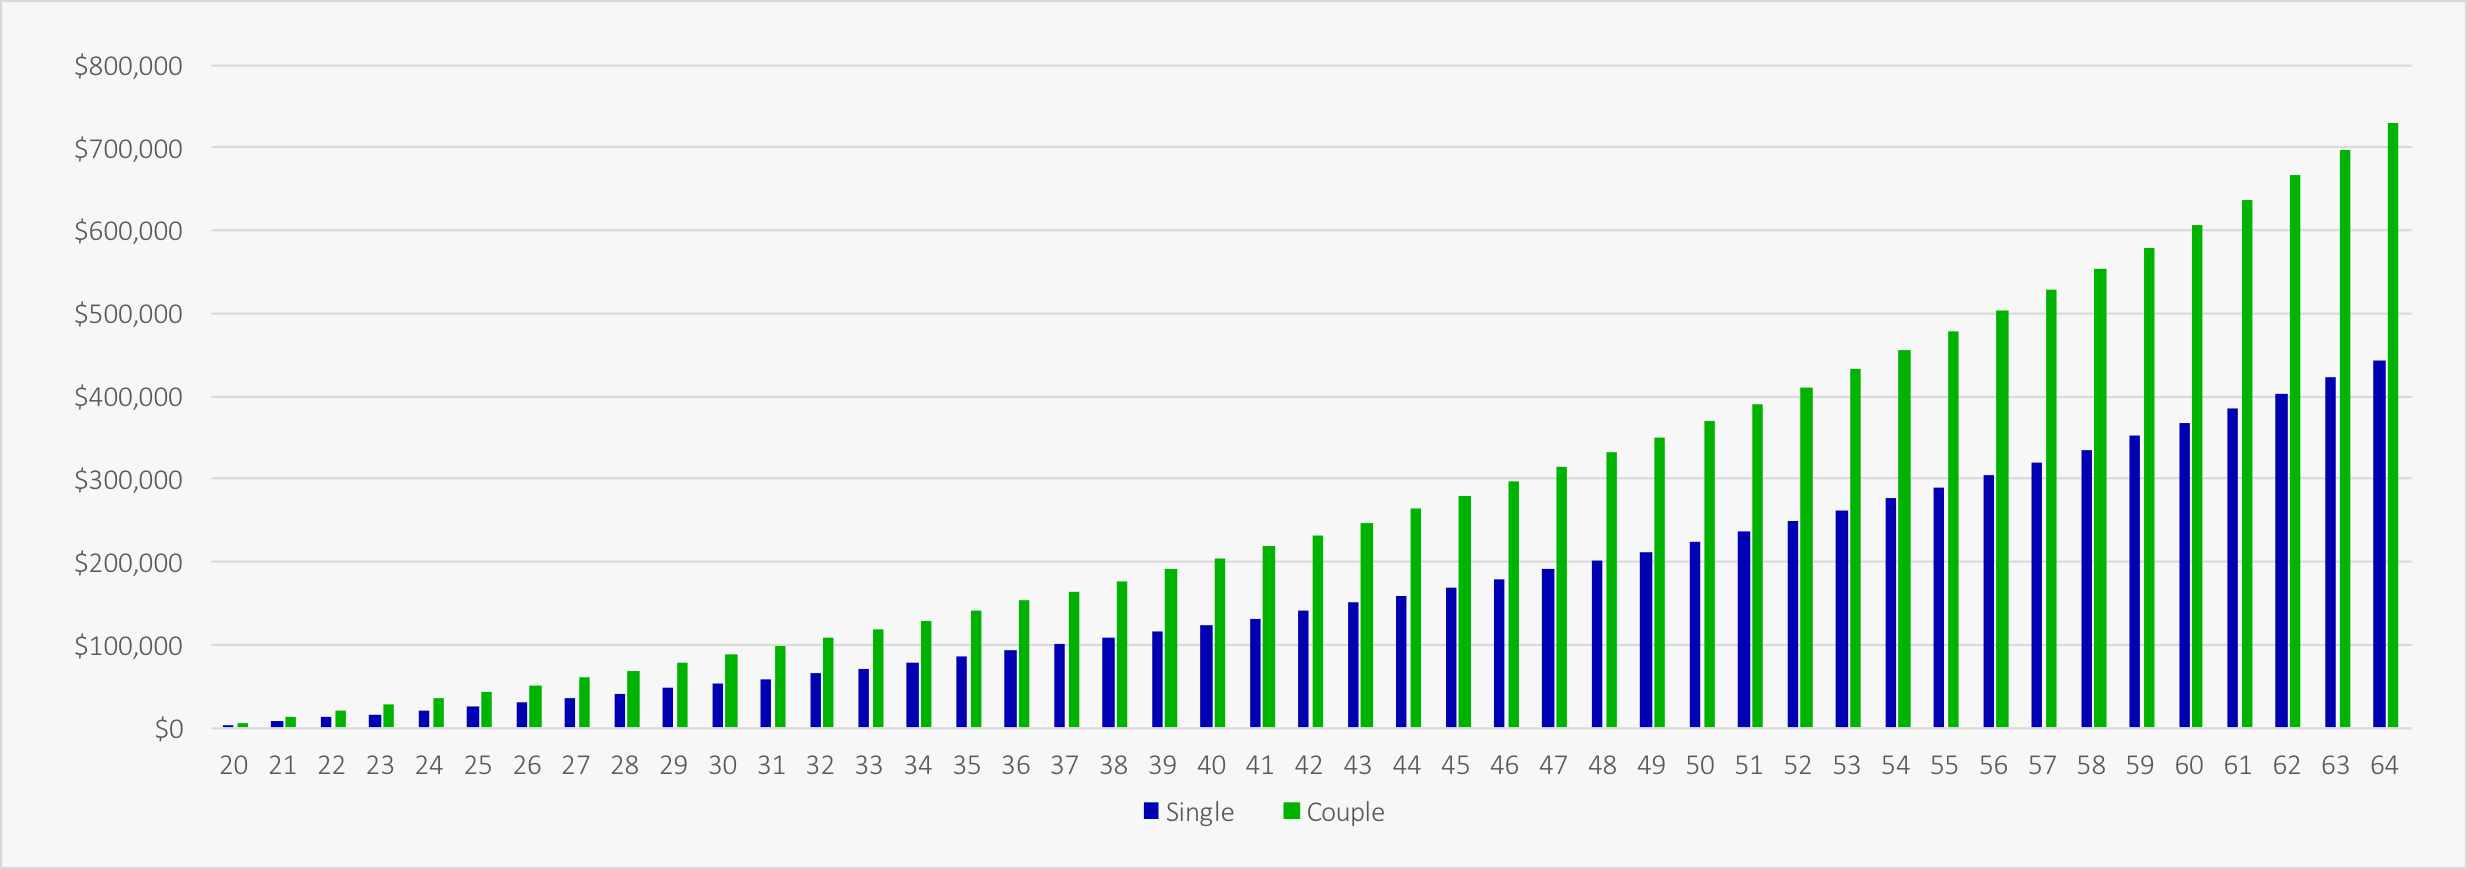 target retirement savings by age chart planeasy